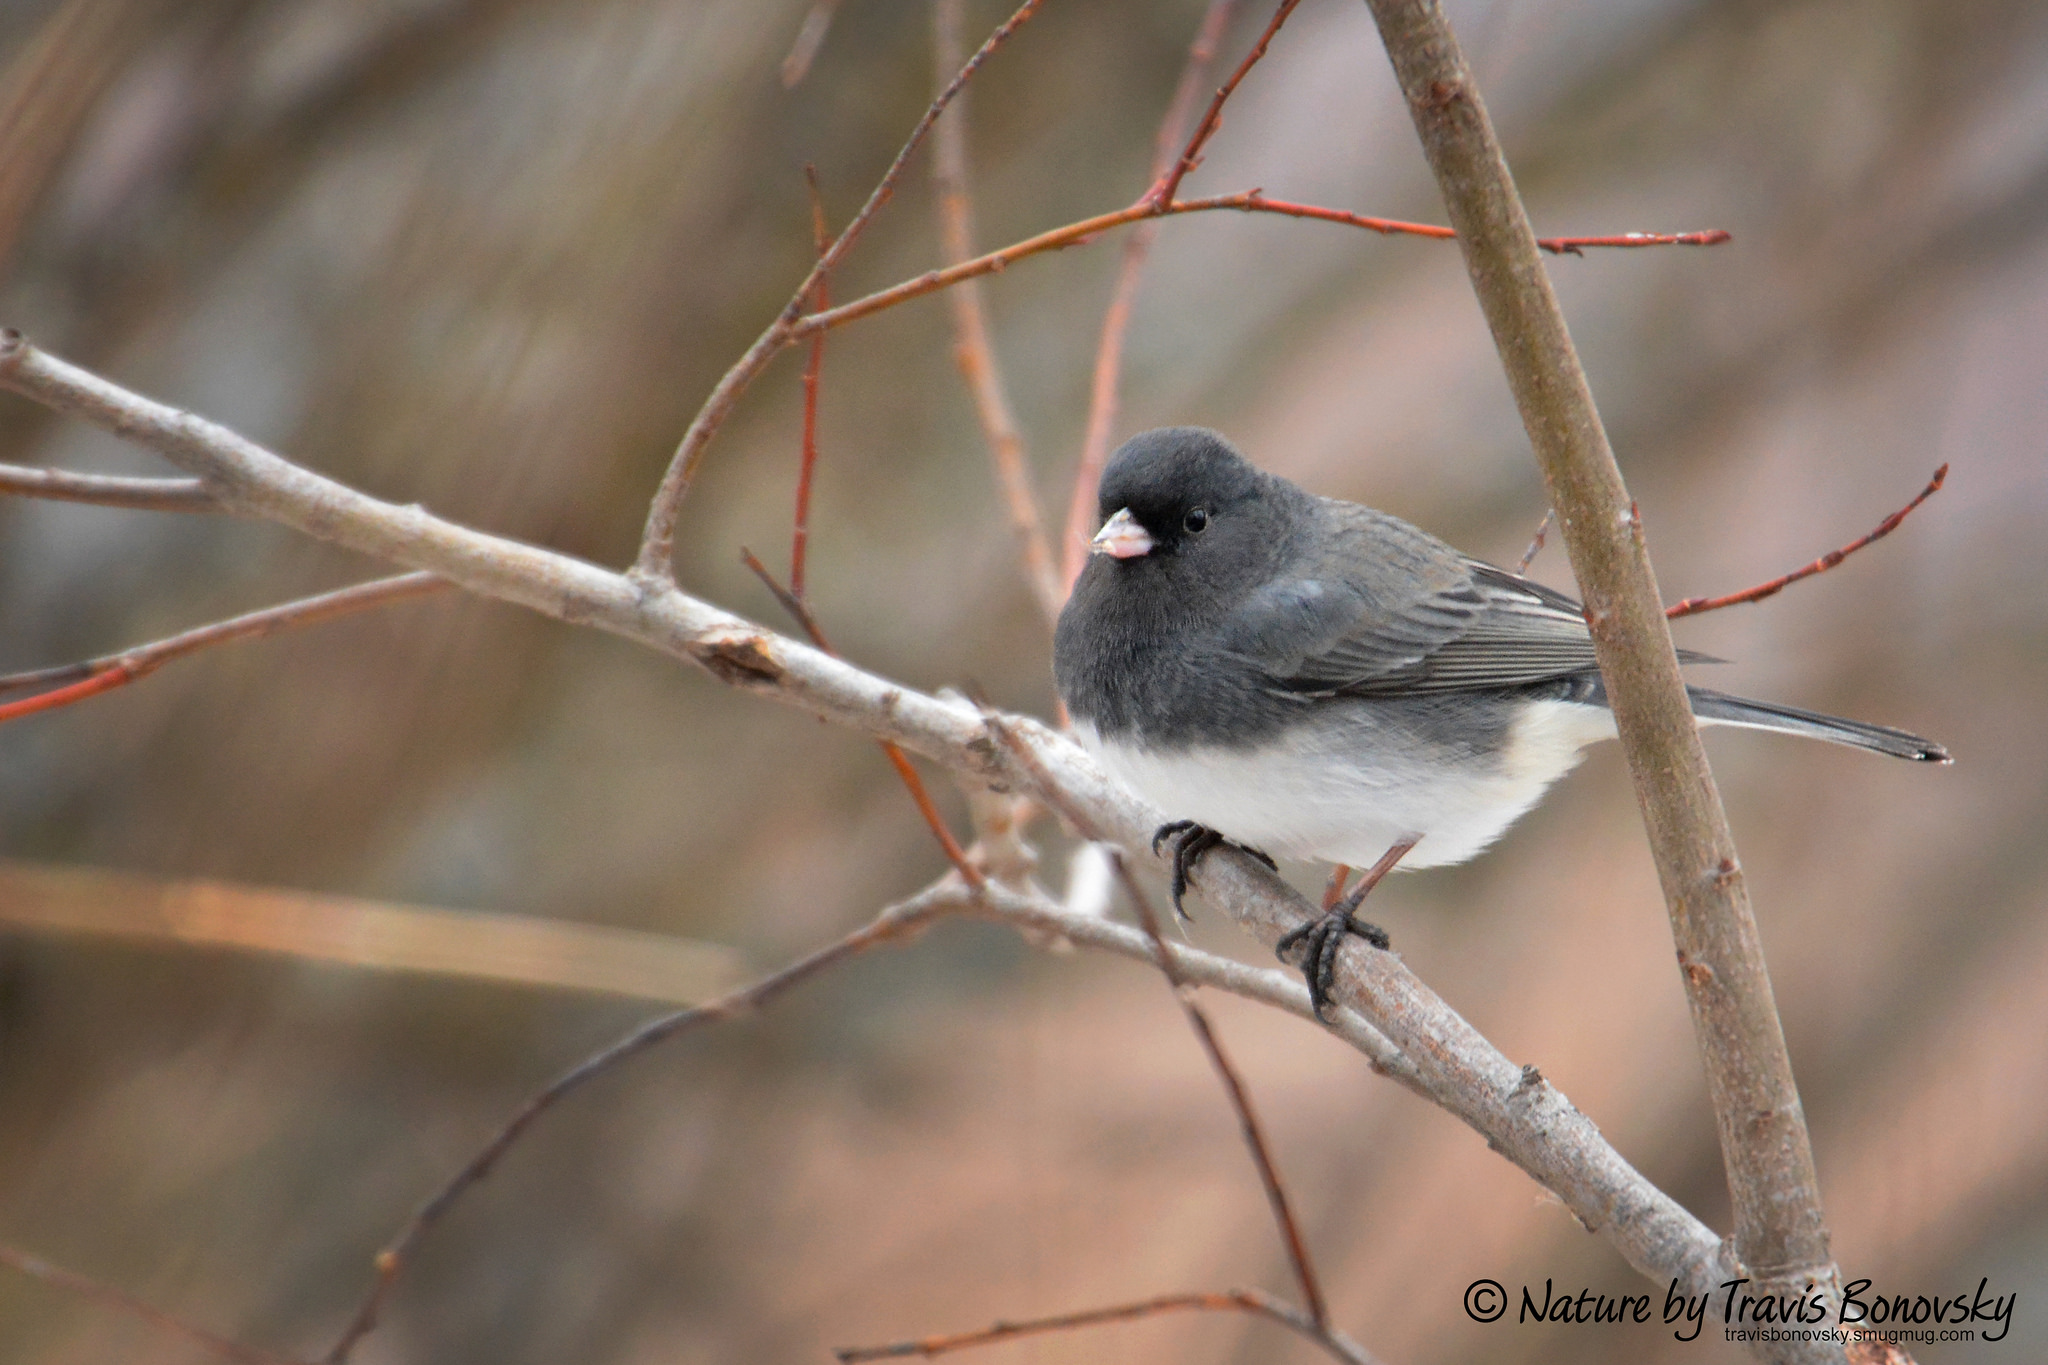 While pictured here resting in a small tree, the dark-eyed junco spends most of its time foraging on the ground. This bird is found throughout the United States from Alaska to Mexico, California to New York, as well as our back yards in Minnesota. (photo credit: Travis Bono)